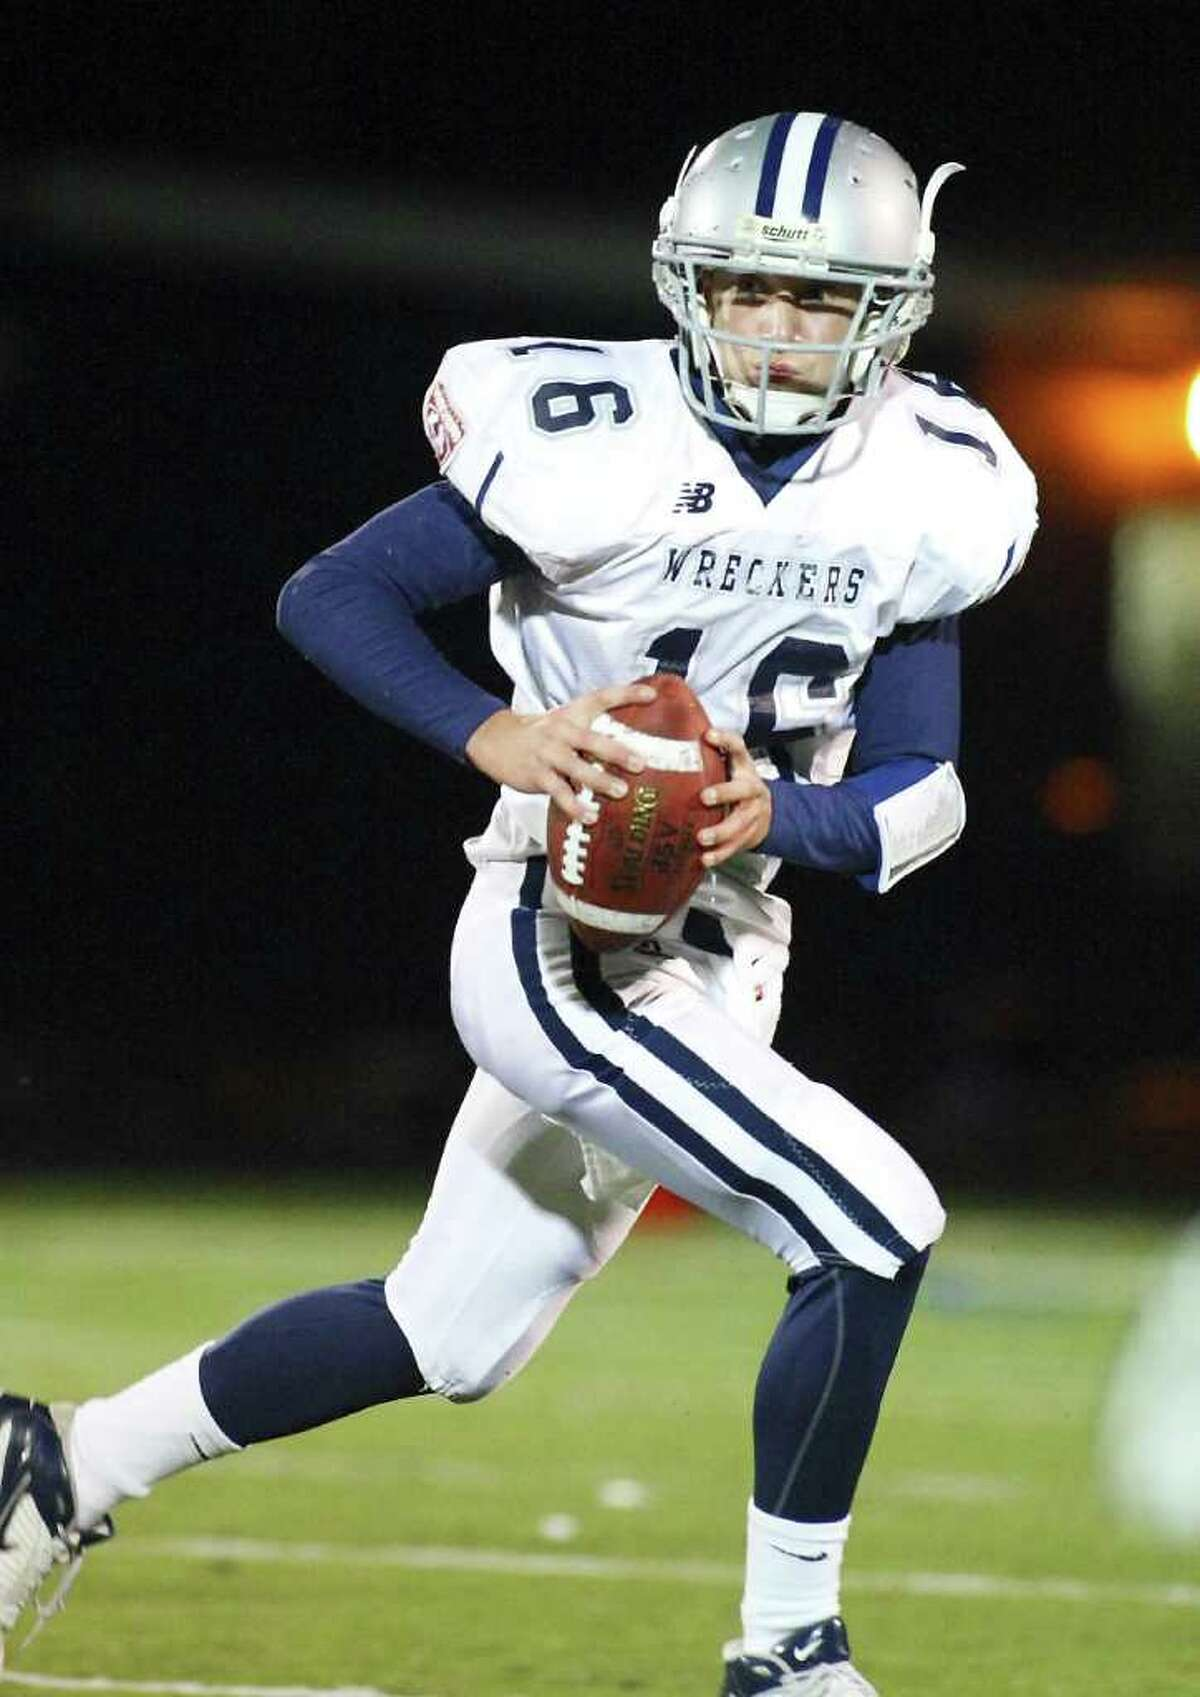 Staples High School football played Wilton High School on Friday November 5, 2010, at the field in Wilton, Conn. Staples' quarterback Jack Massie